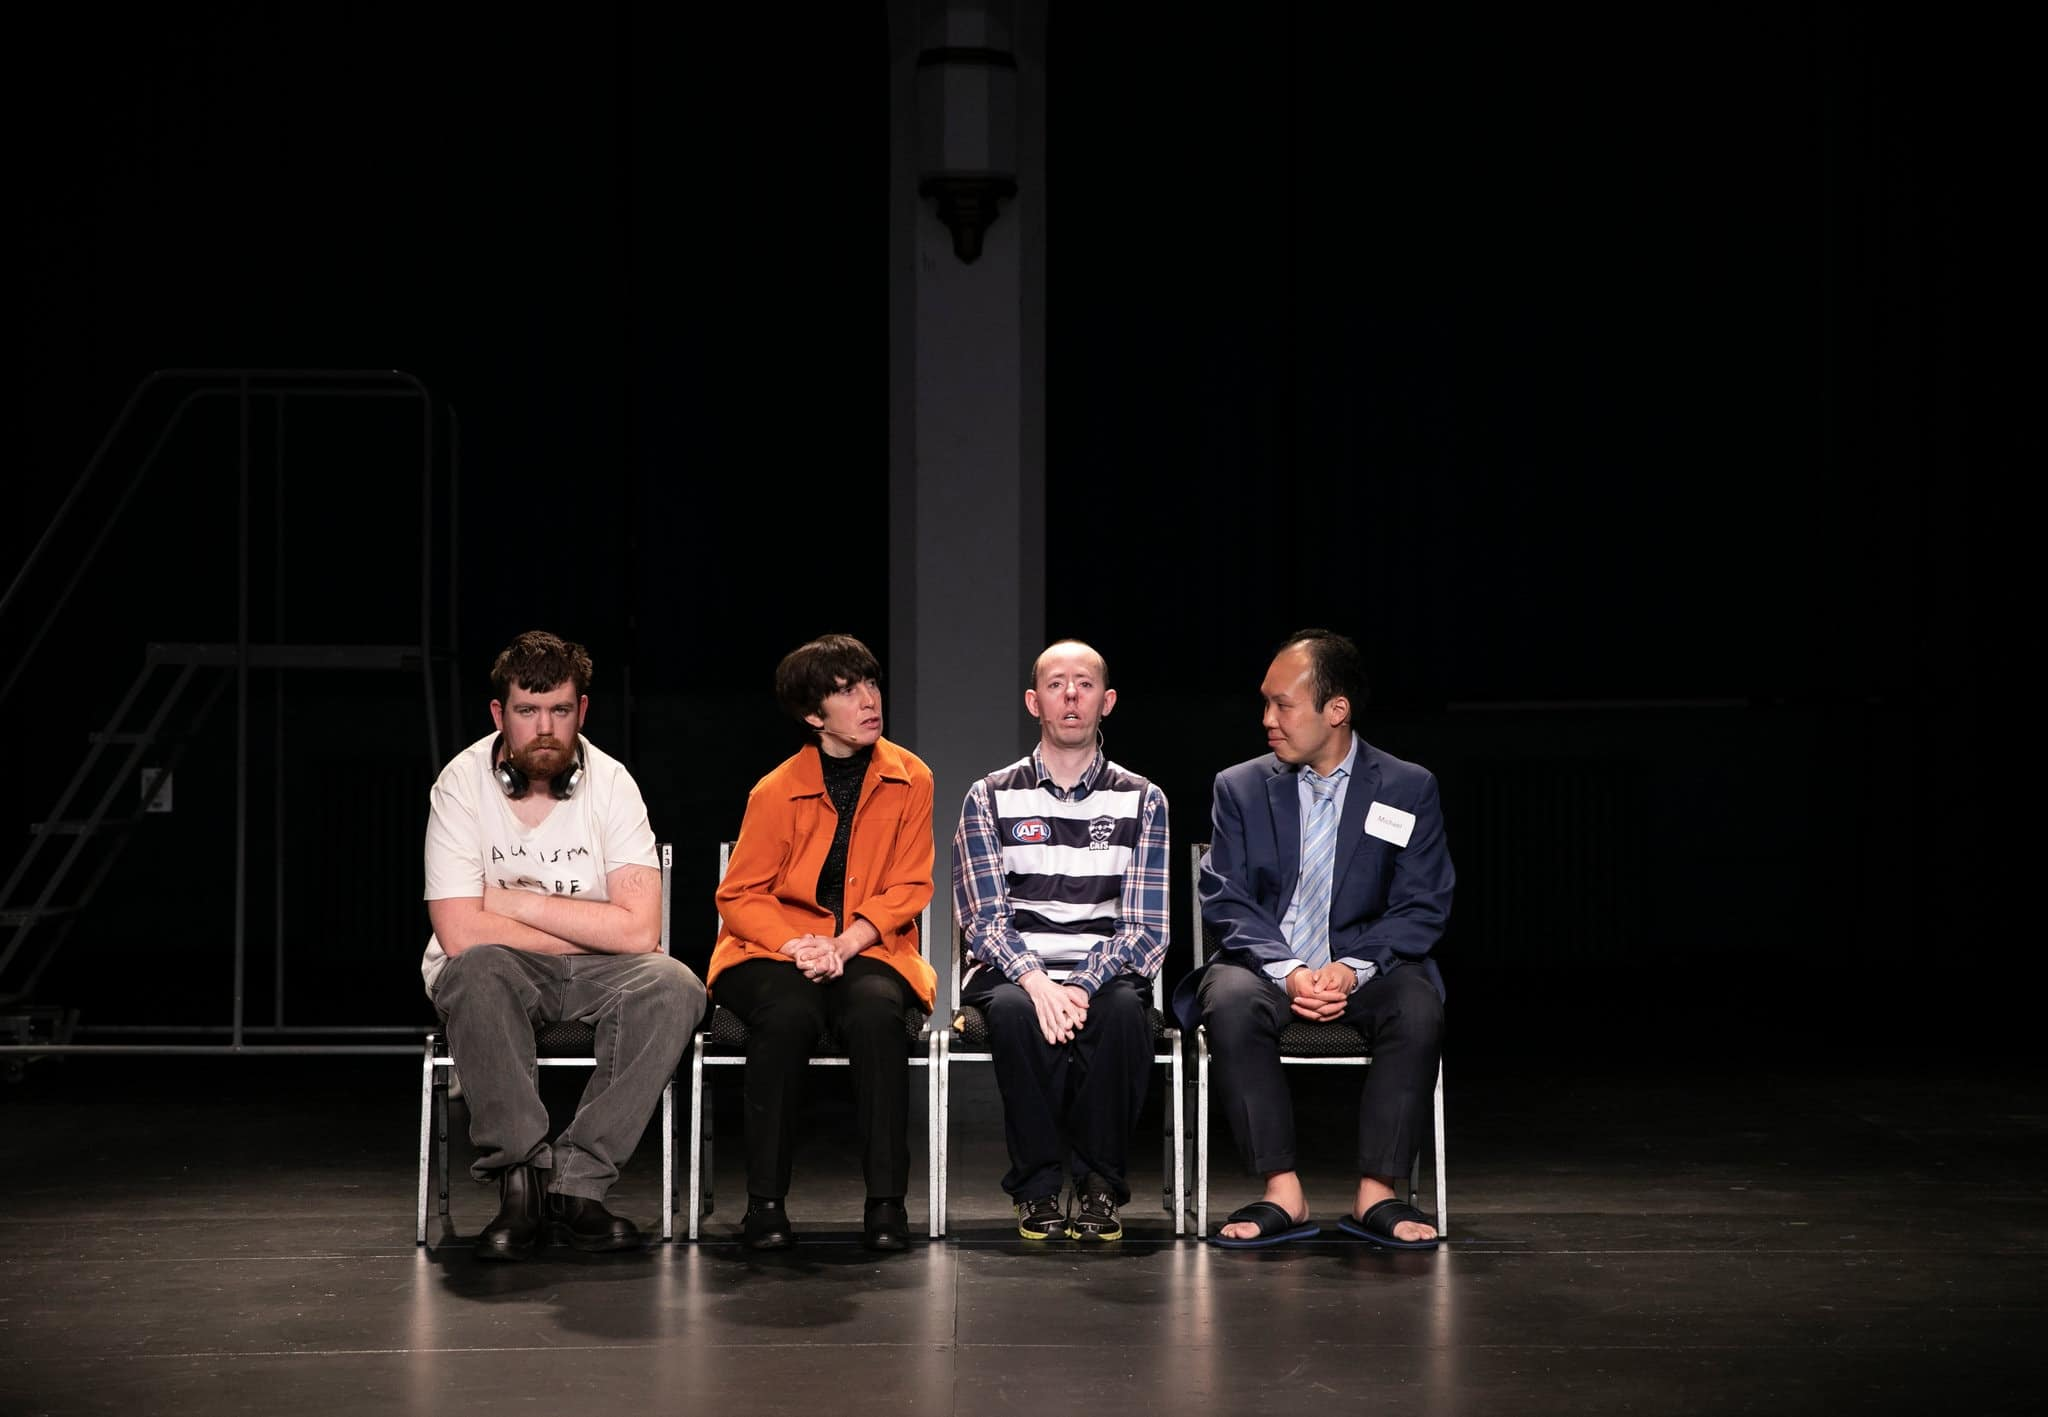 Four actors with disabilities on stage